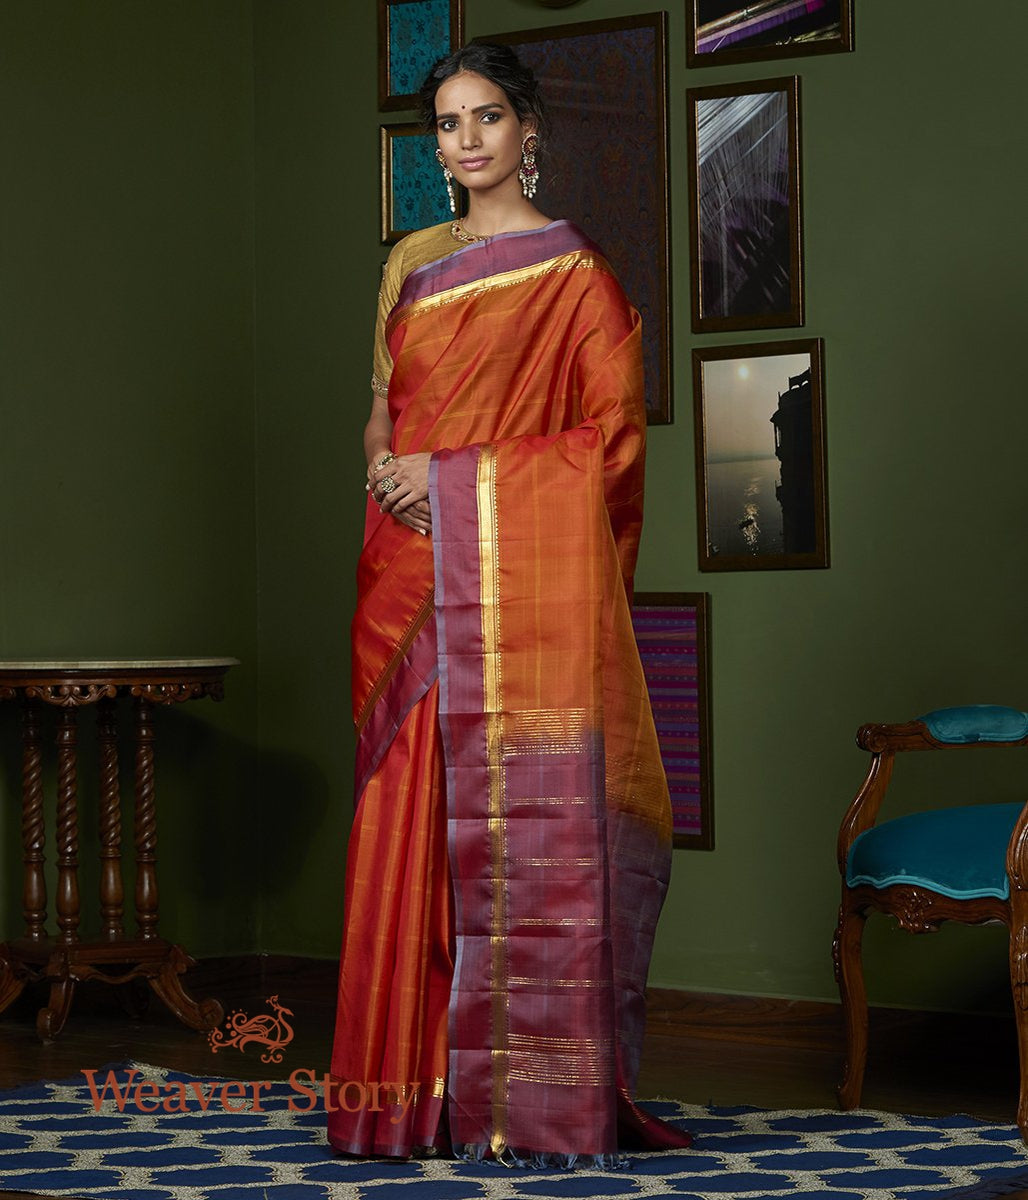 Handwoven Rust Kanjivaram Sailk Saree with Wine Border